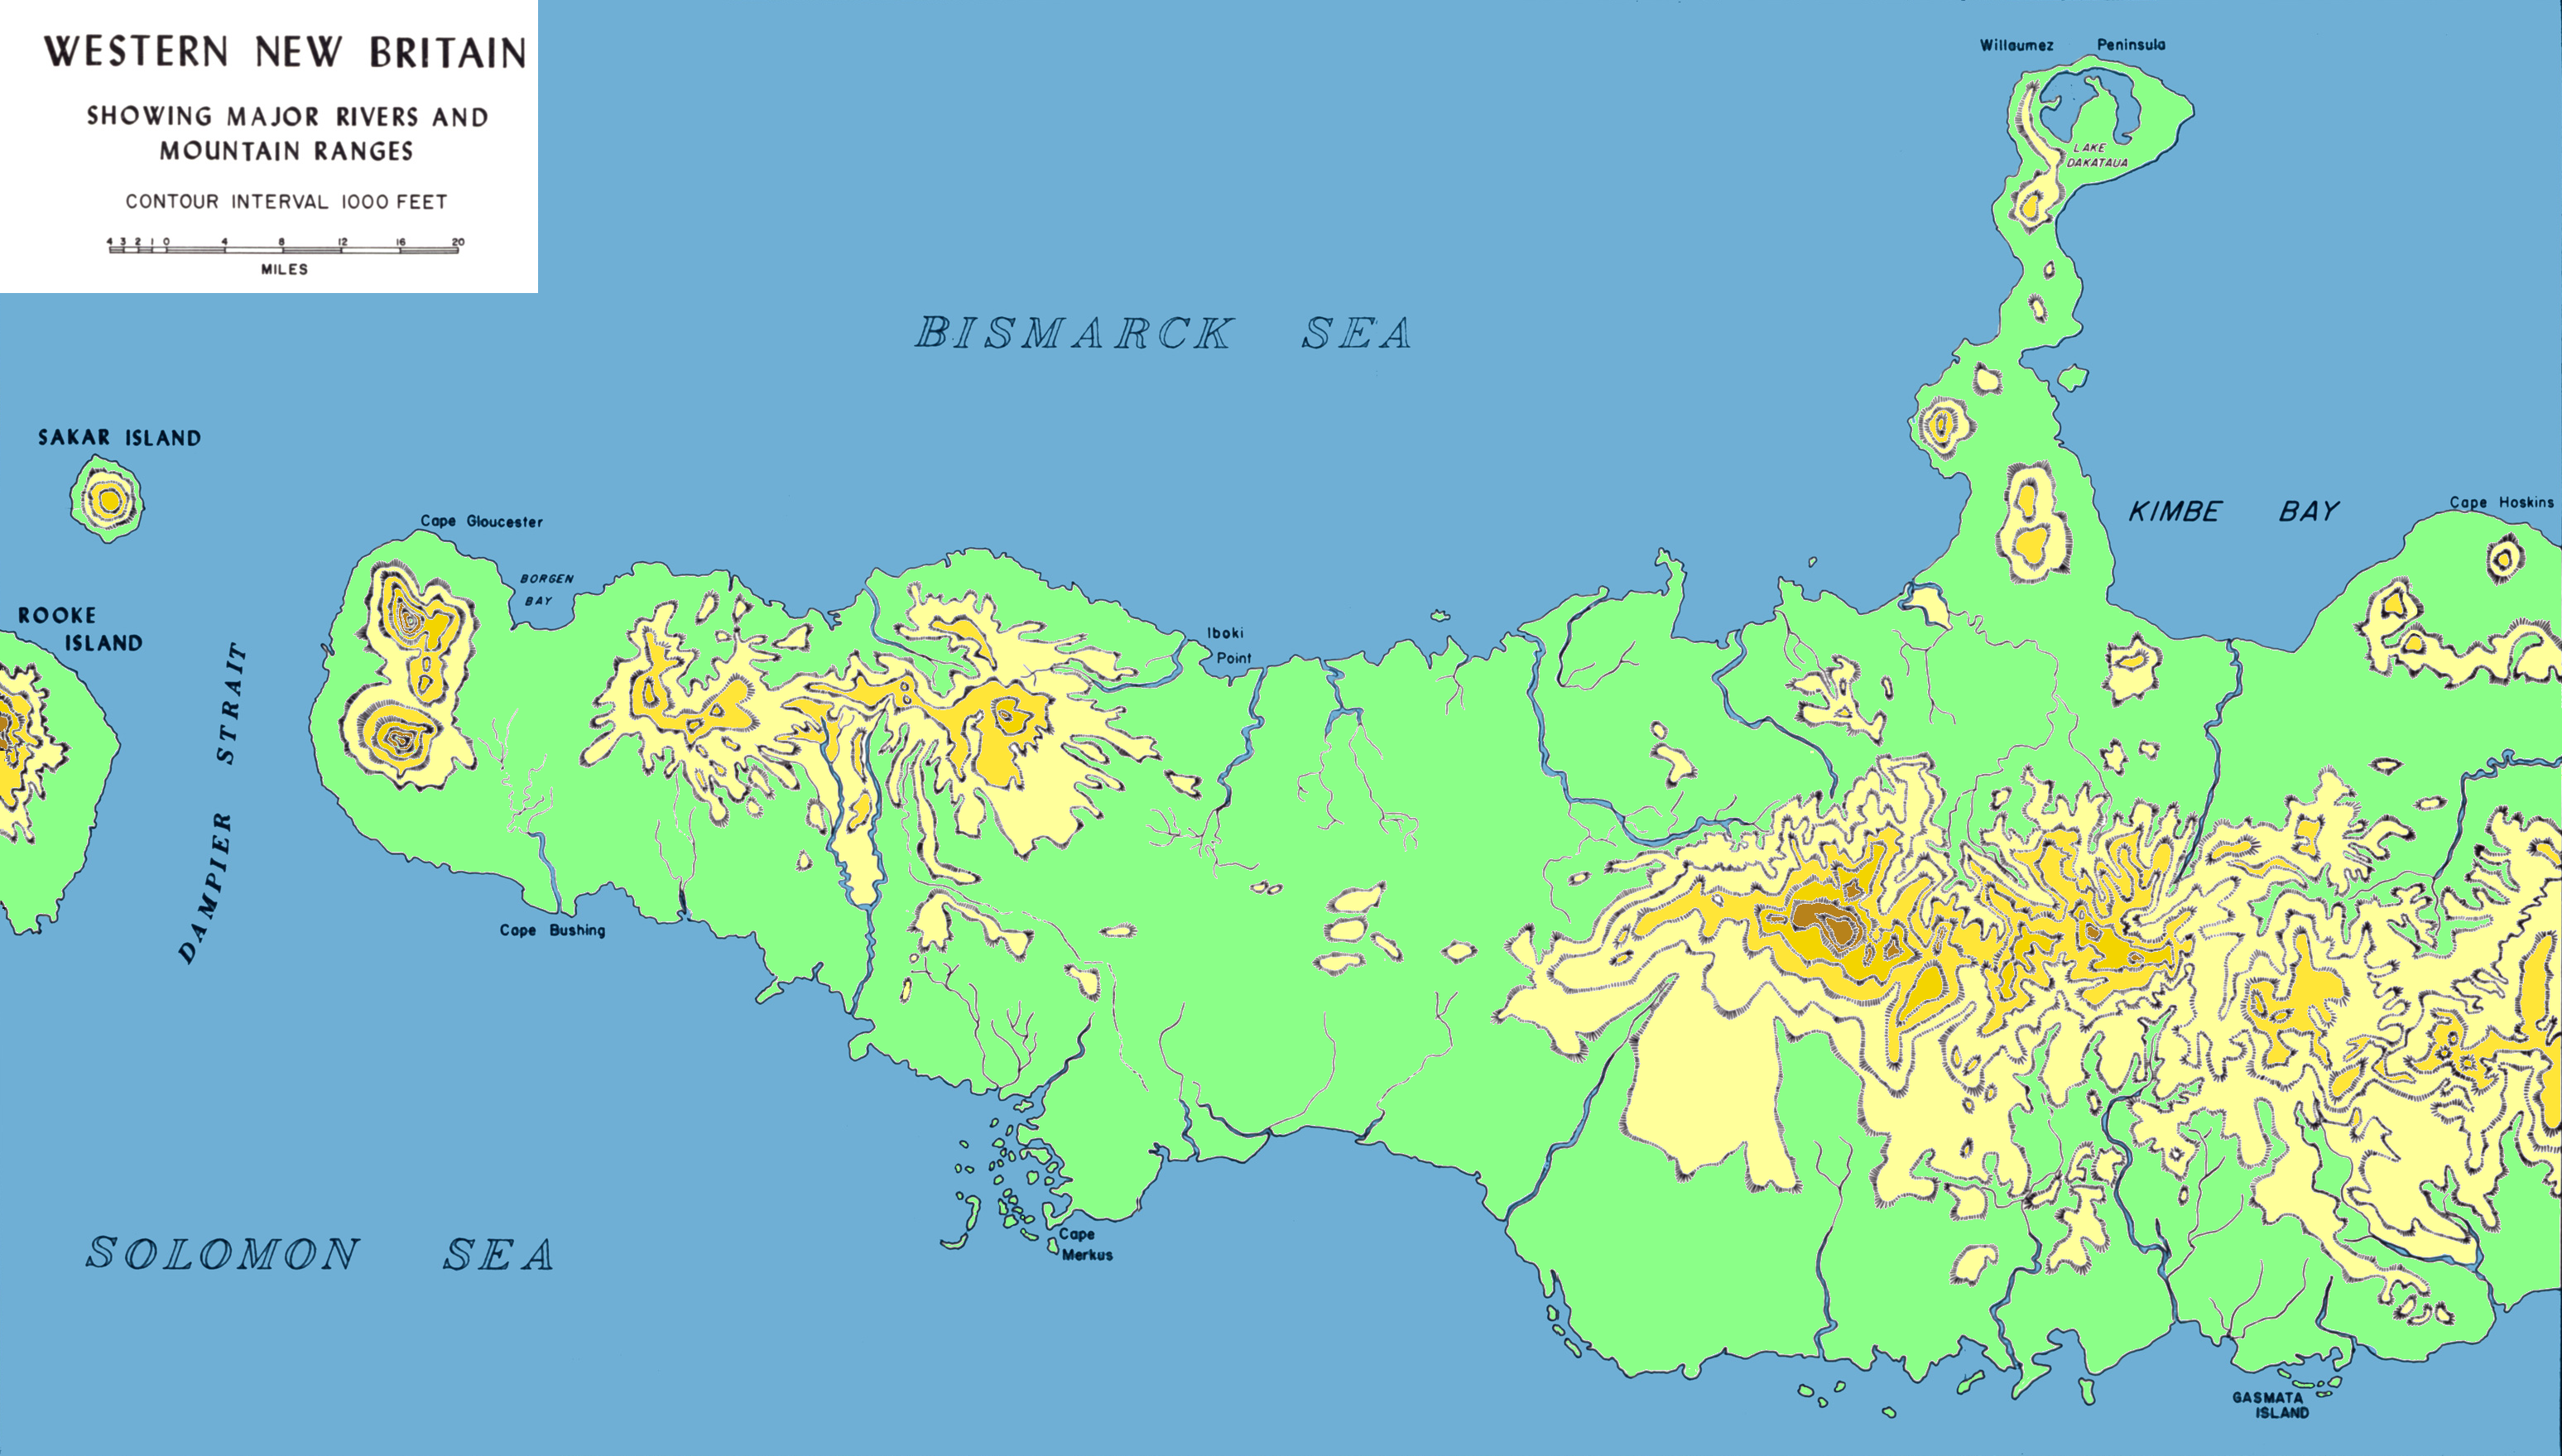 FileWest New Britainpng Wikimedia Commons